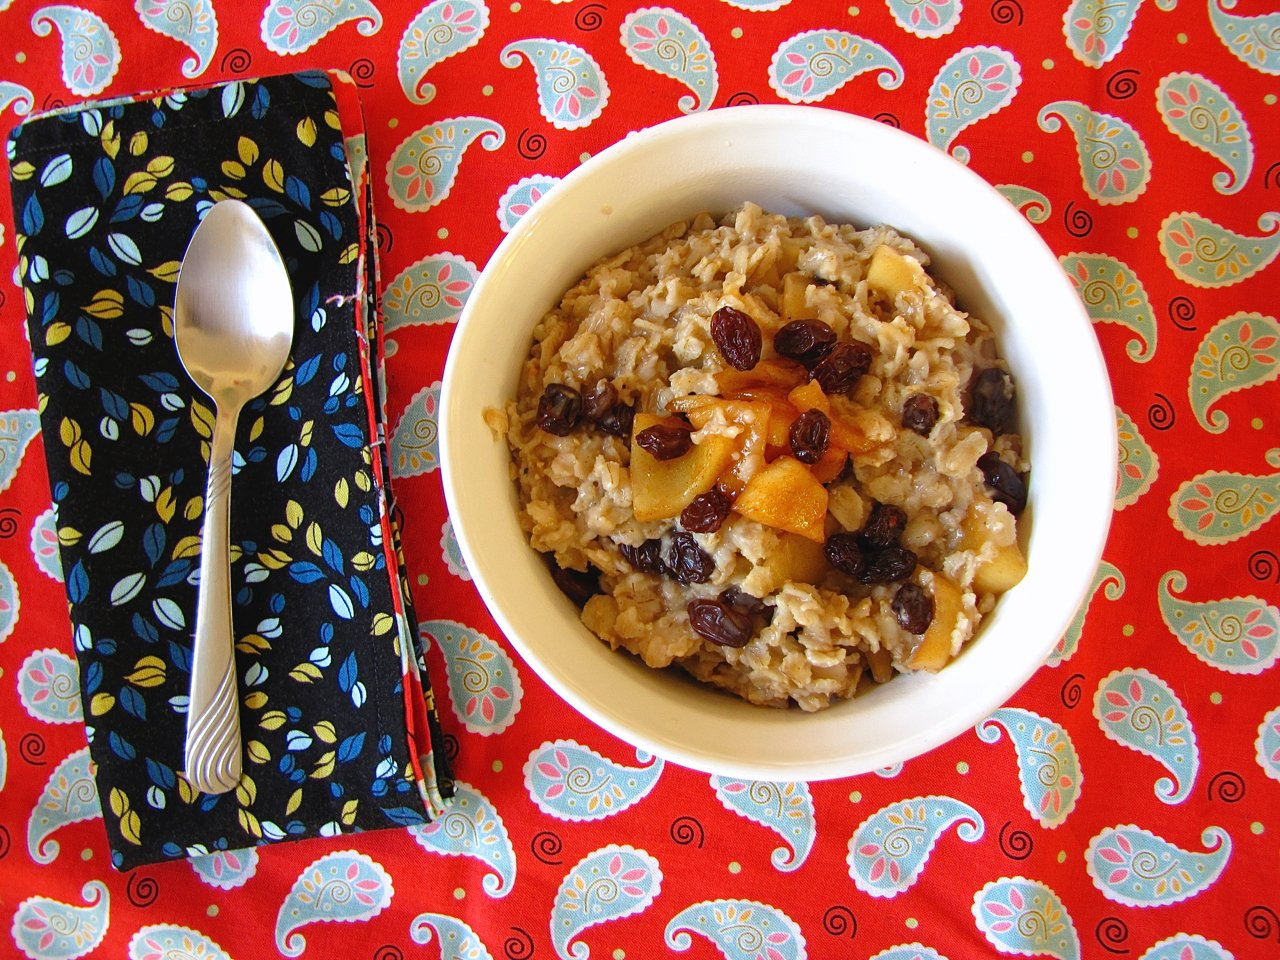 Cinnamon Raisin Oatmeal with Caramelized Apples